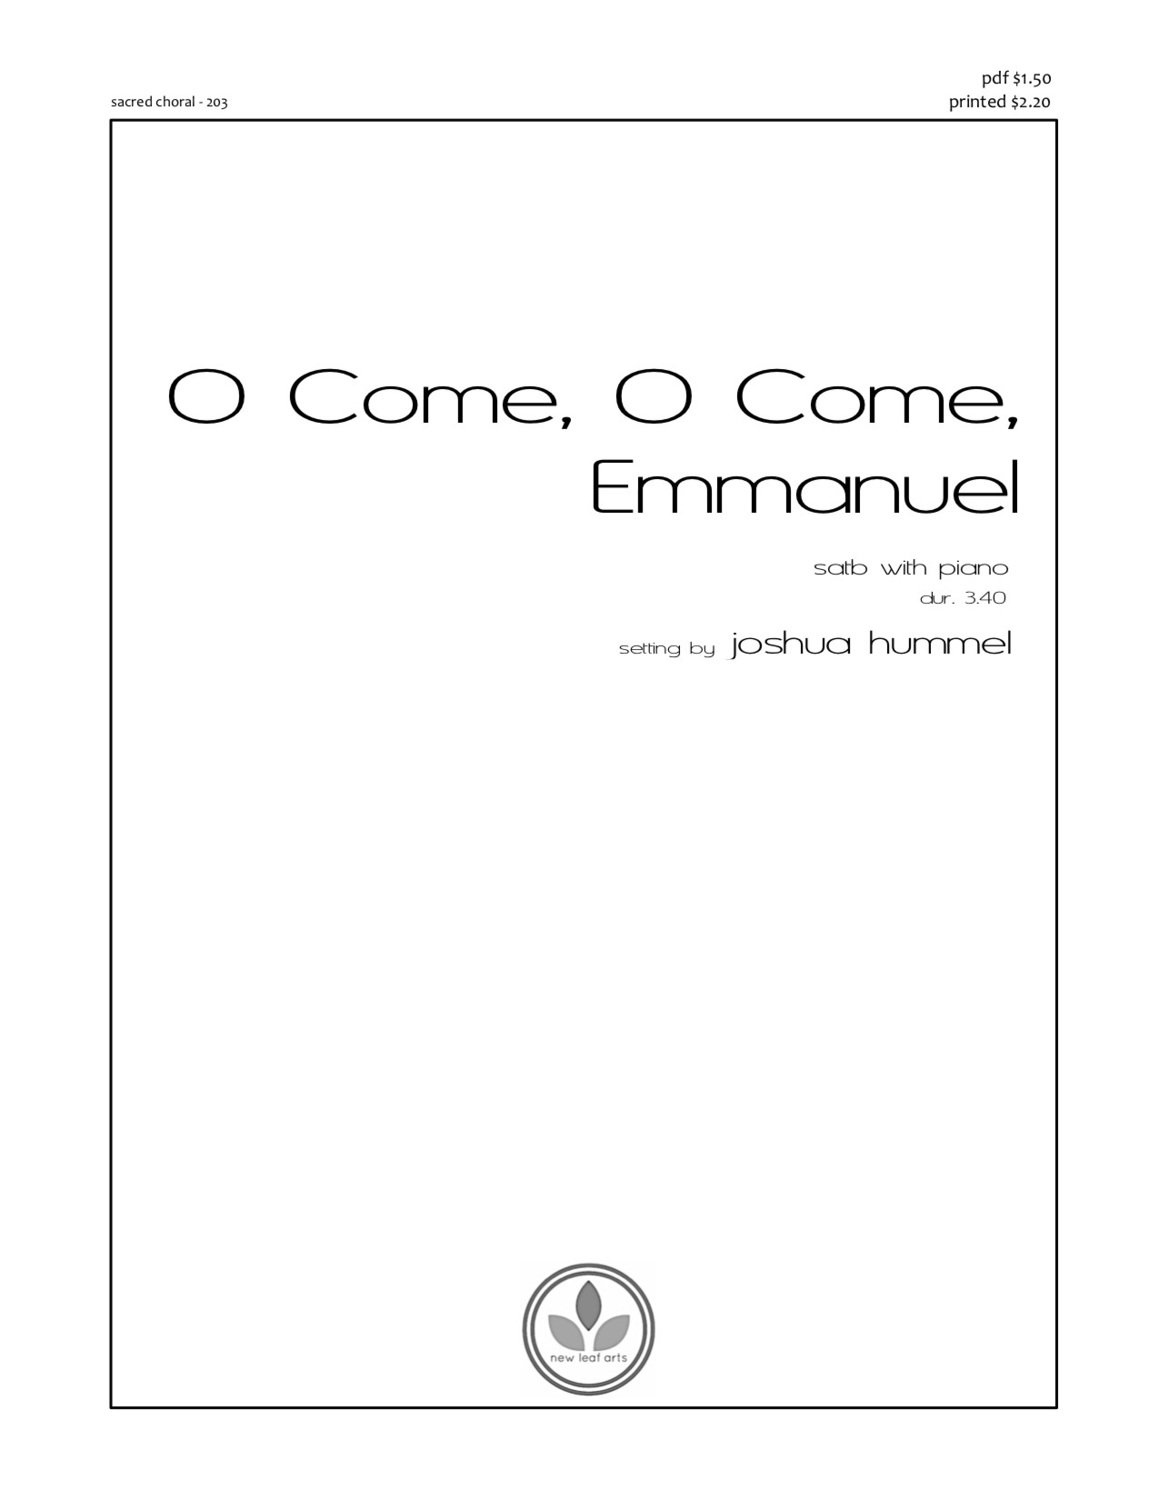 O COME, O COME, EMMANUEL - SATB with piano